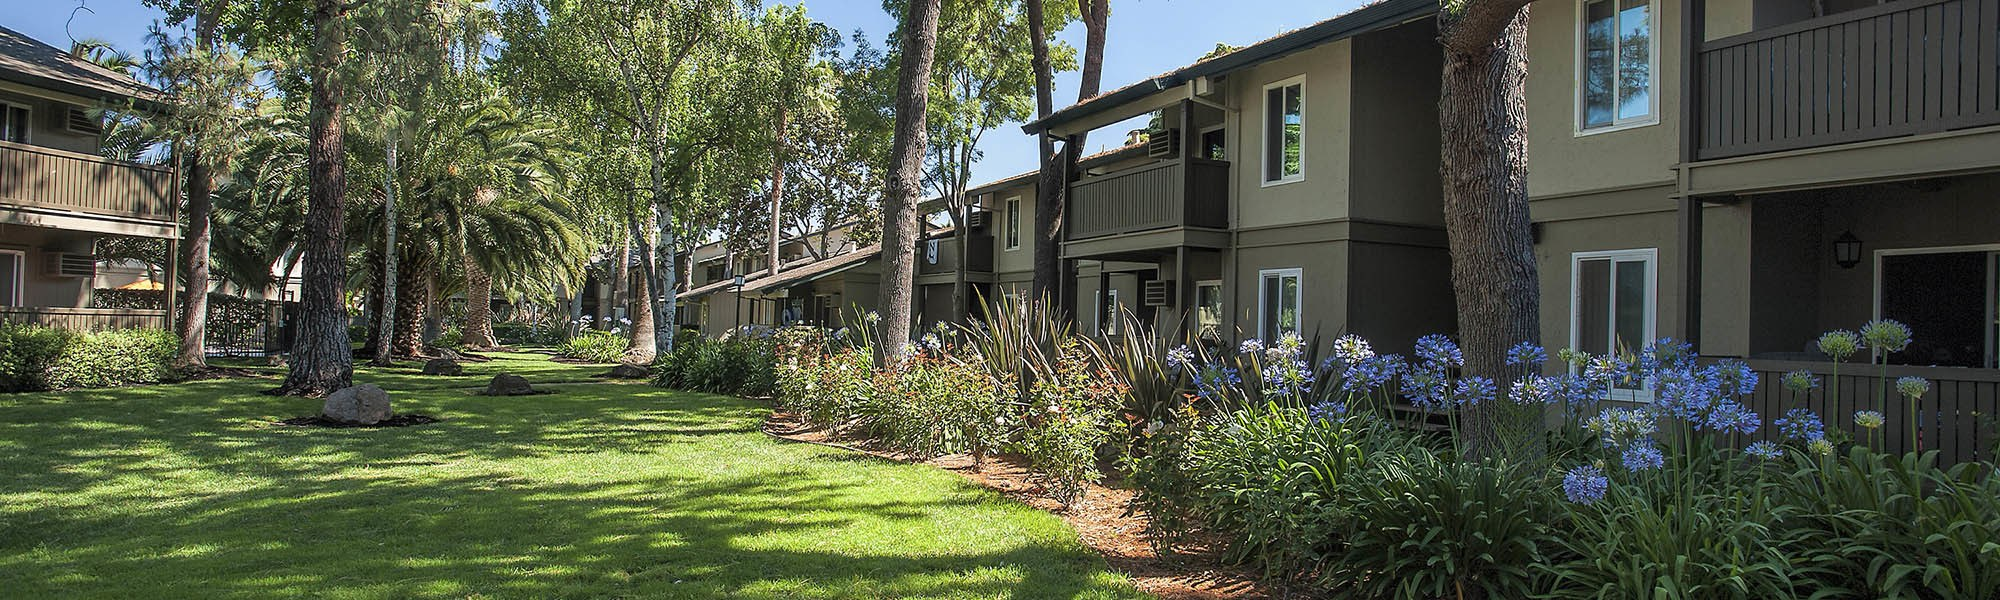 Read our privacy policy on our website for Villa Palms Apartment Homes